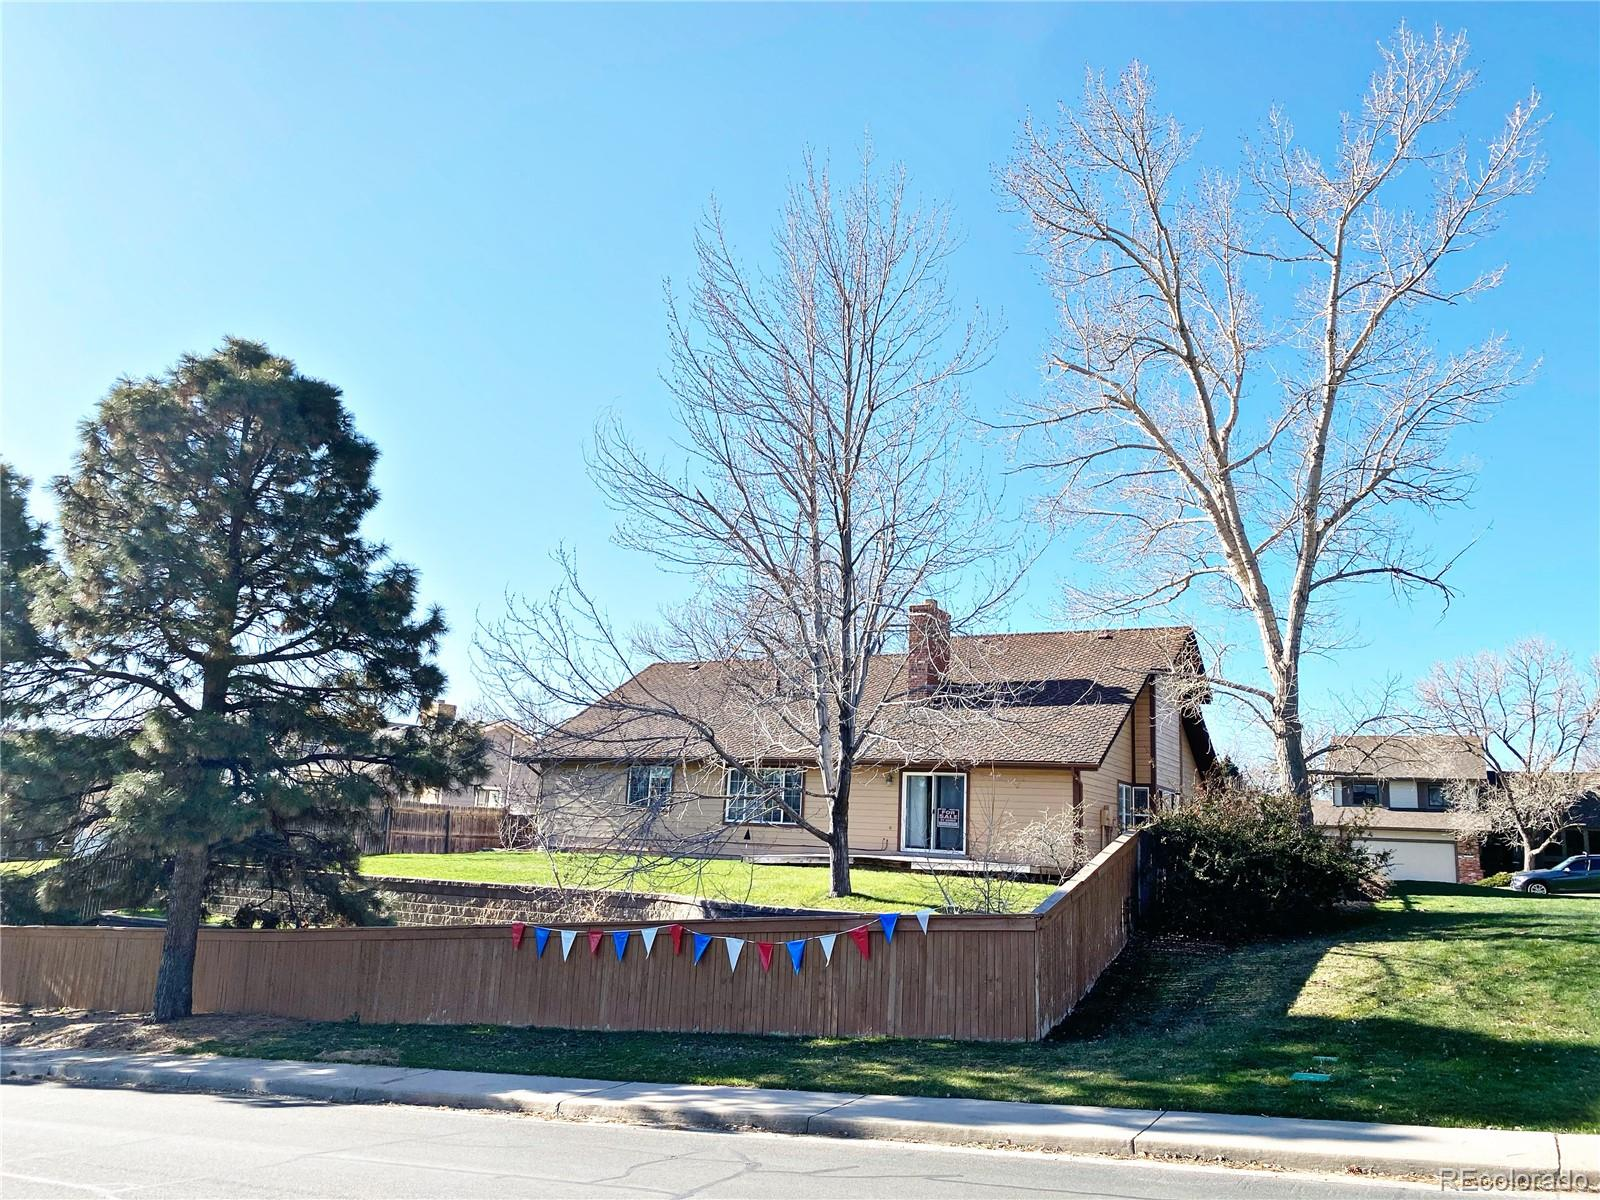 8200 S Locust Way Property Photo - Centennial, CO real estate listing